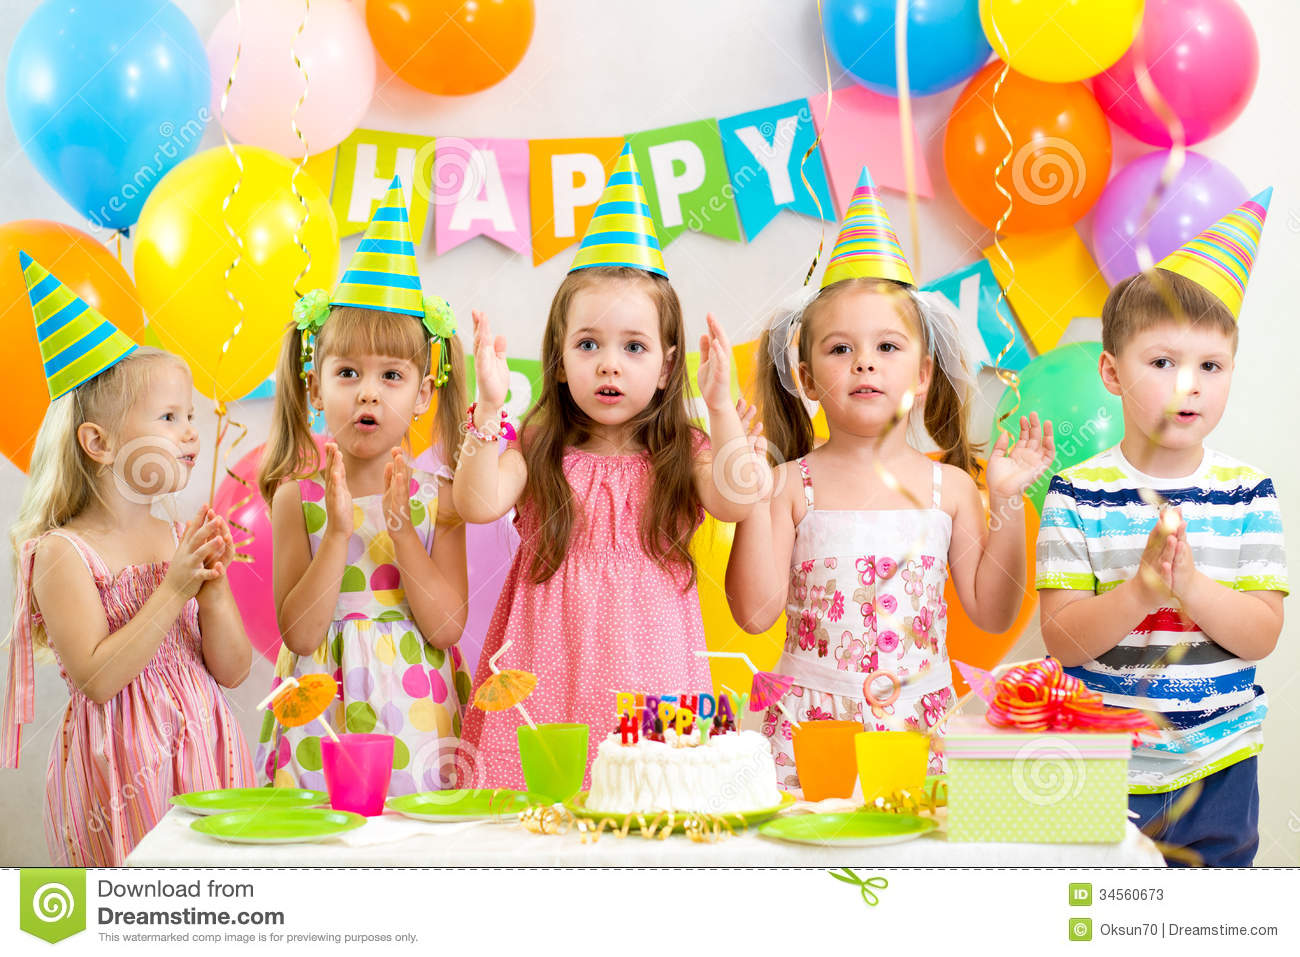 picture of birthday party celebration ; kids-celebrating-birthday-party-happy-holiday-34560673